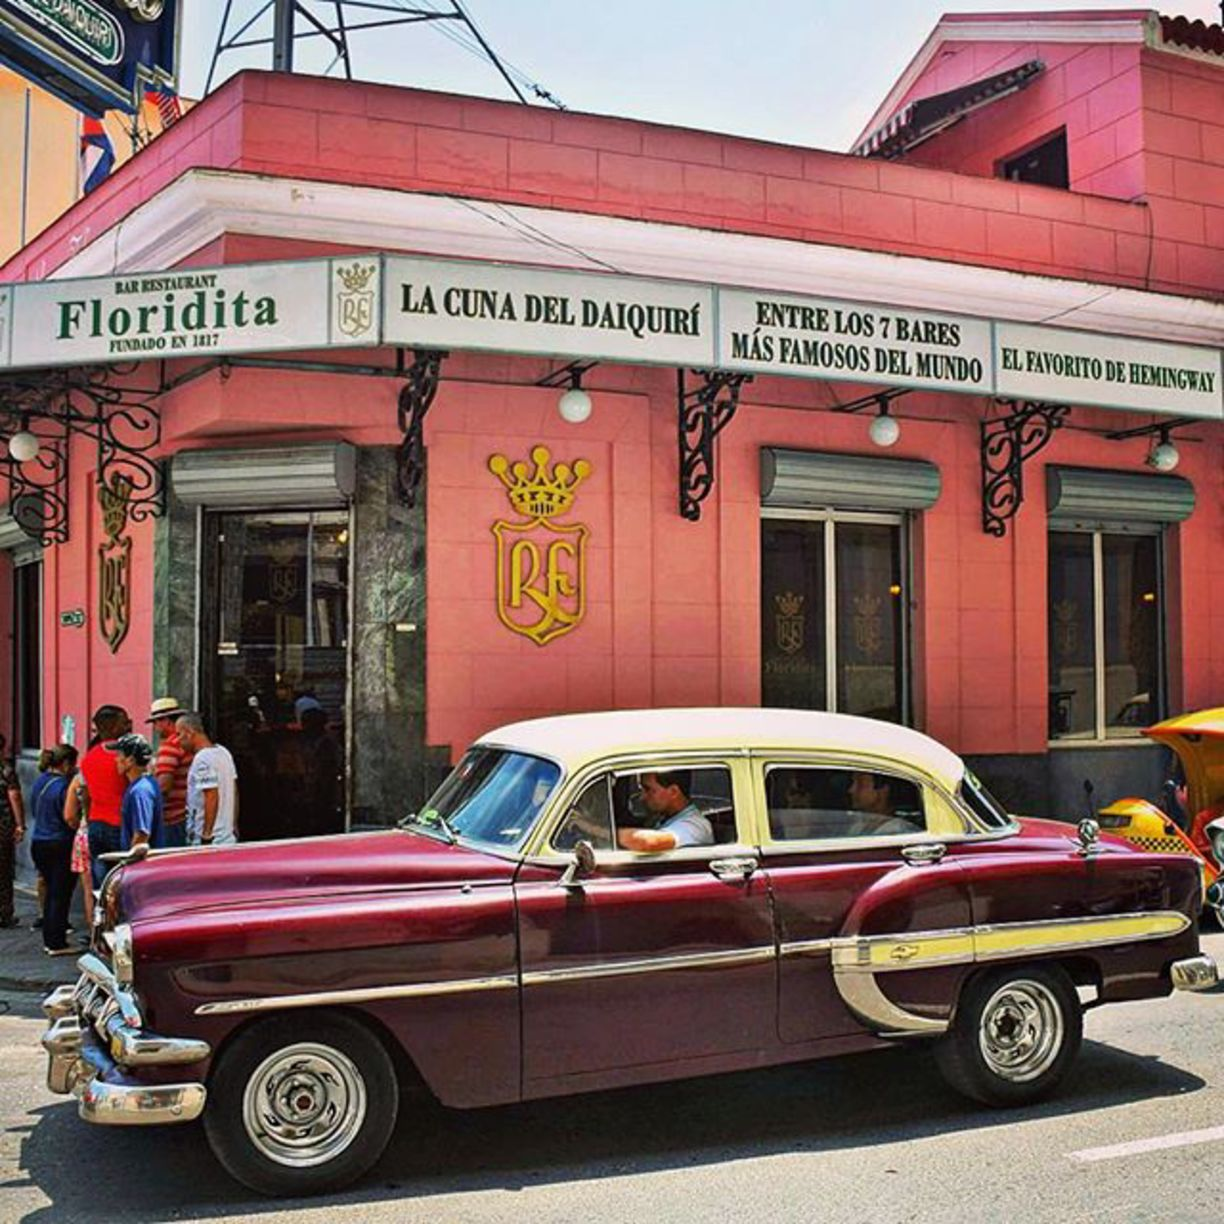 The Floridita bar in Havana, Cuba - The Cradle of the Daiquiri